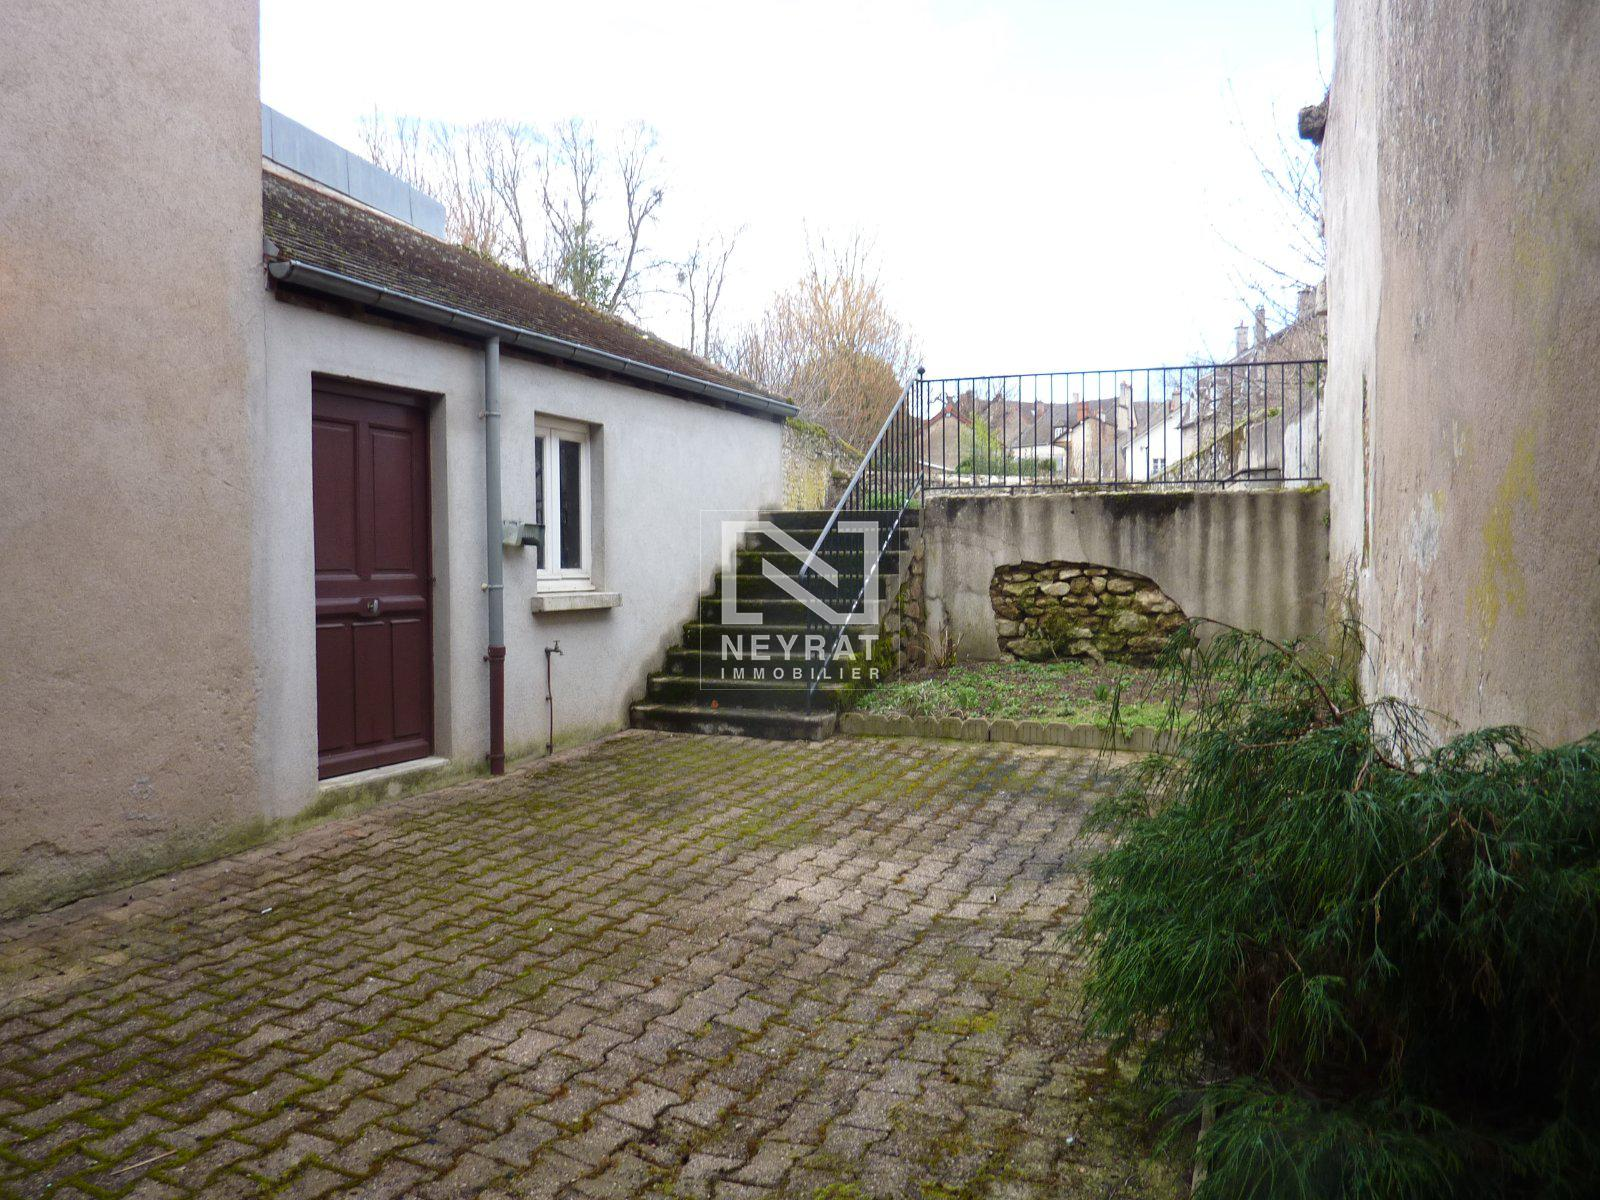 APPARTEMENT T2 A LOUER - AUTUN QUARTIER CATHEDRALE - 50 m2 - 290 € charges comprises par mois